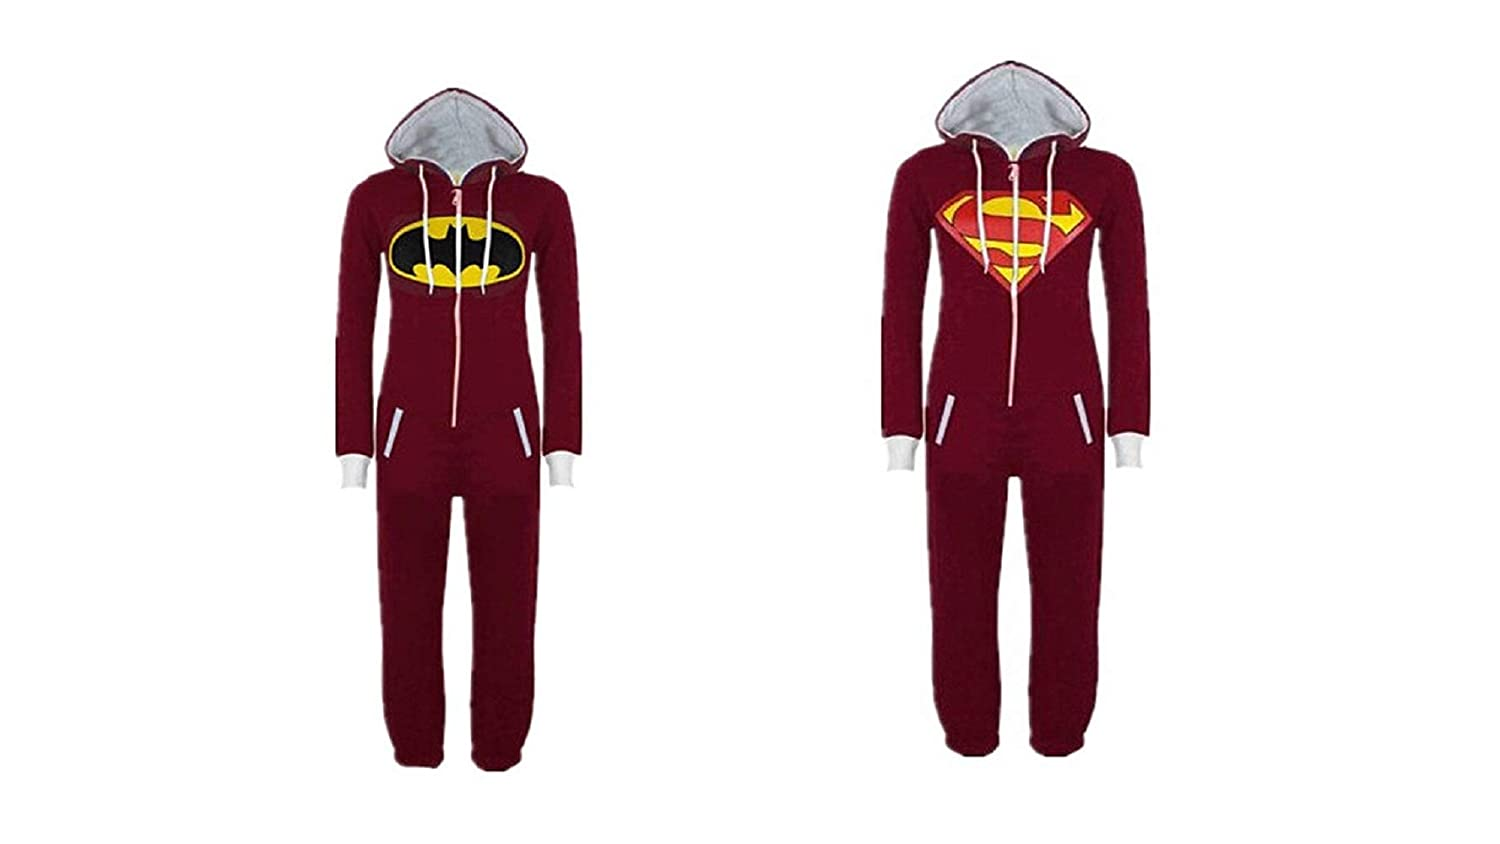 Tresbon Products Unisex Super Hero Red Onesie Loungewear One Piece Sleepwear Batman Superman